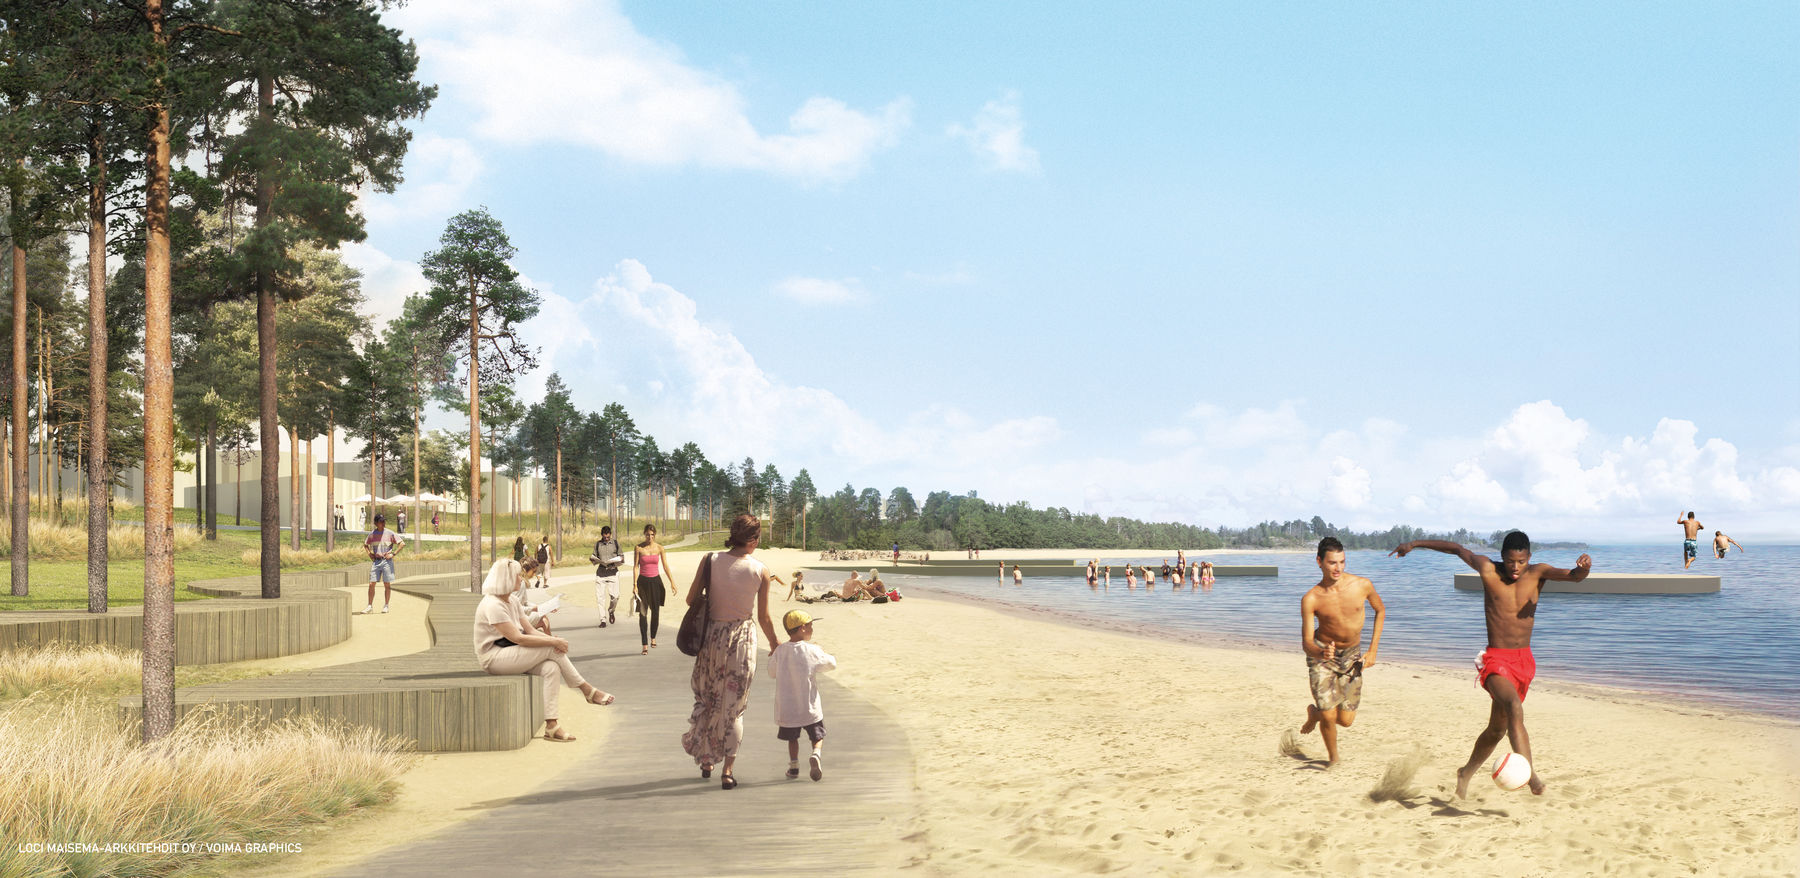 Illustration of beach promenade and people